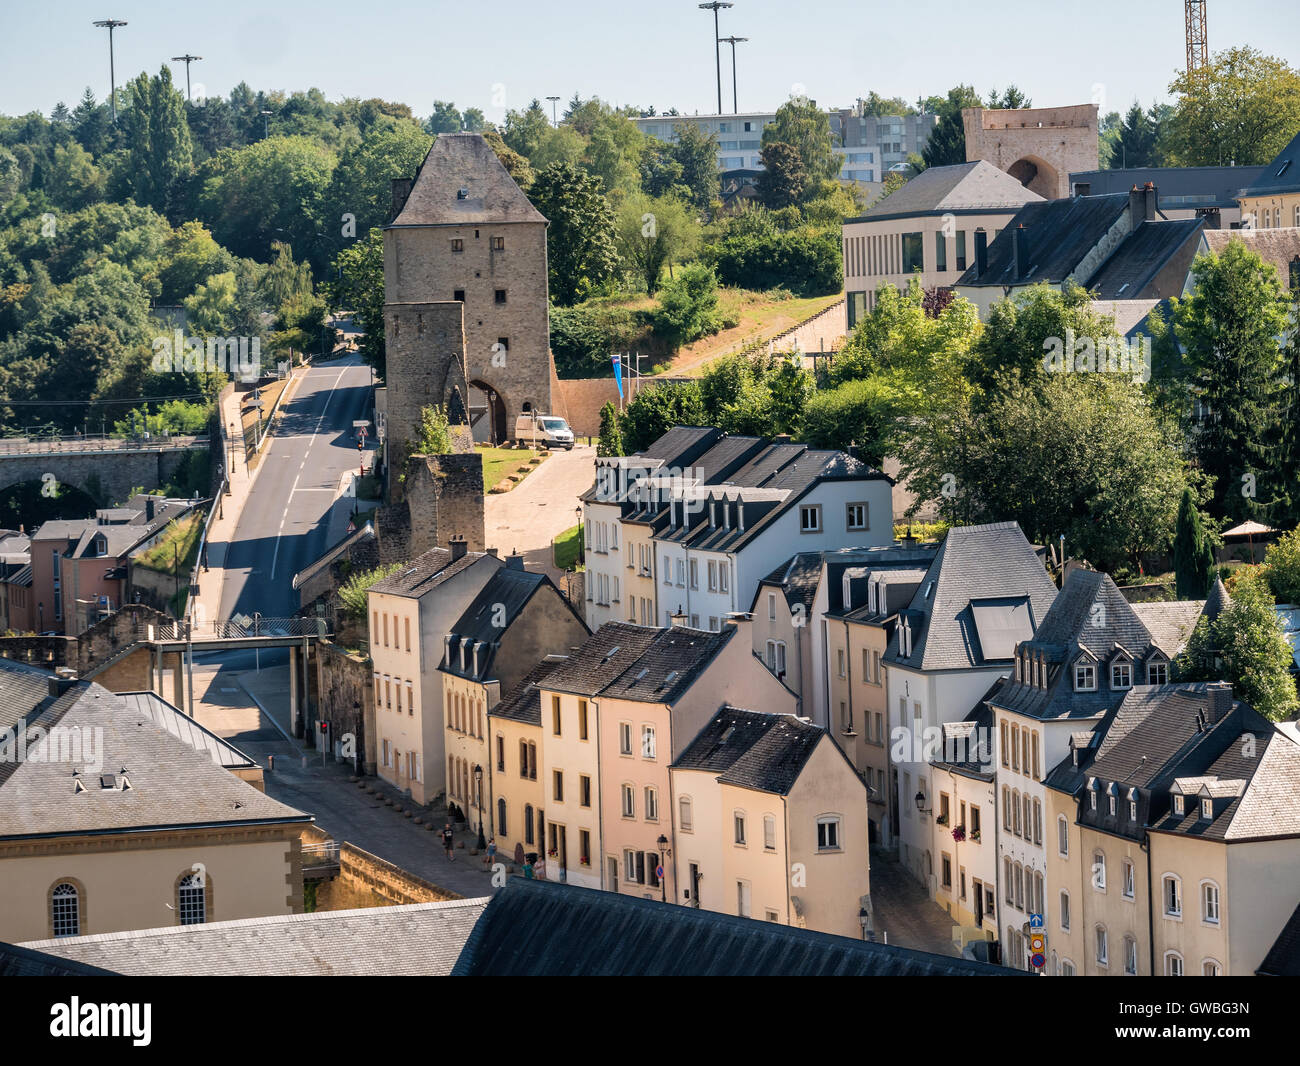 Luxembourg old medieval city with surrounding walls - Stock Image